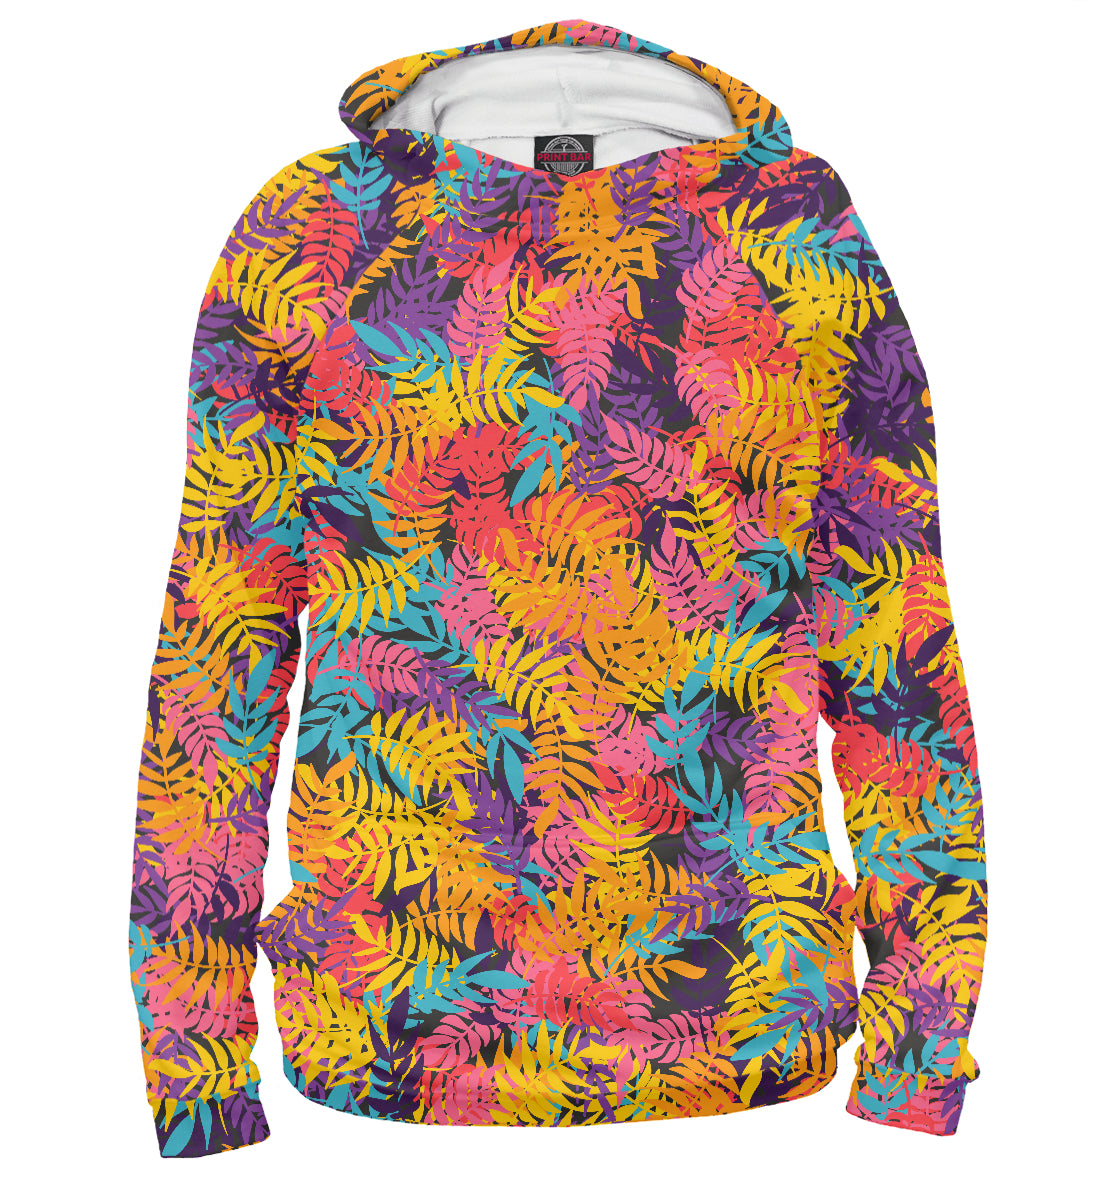 Hoody iridescent leaves | ABS-141928-hud